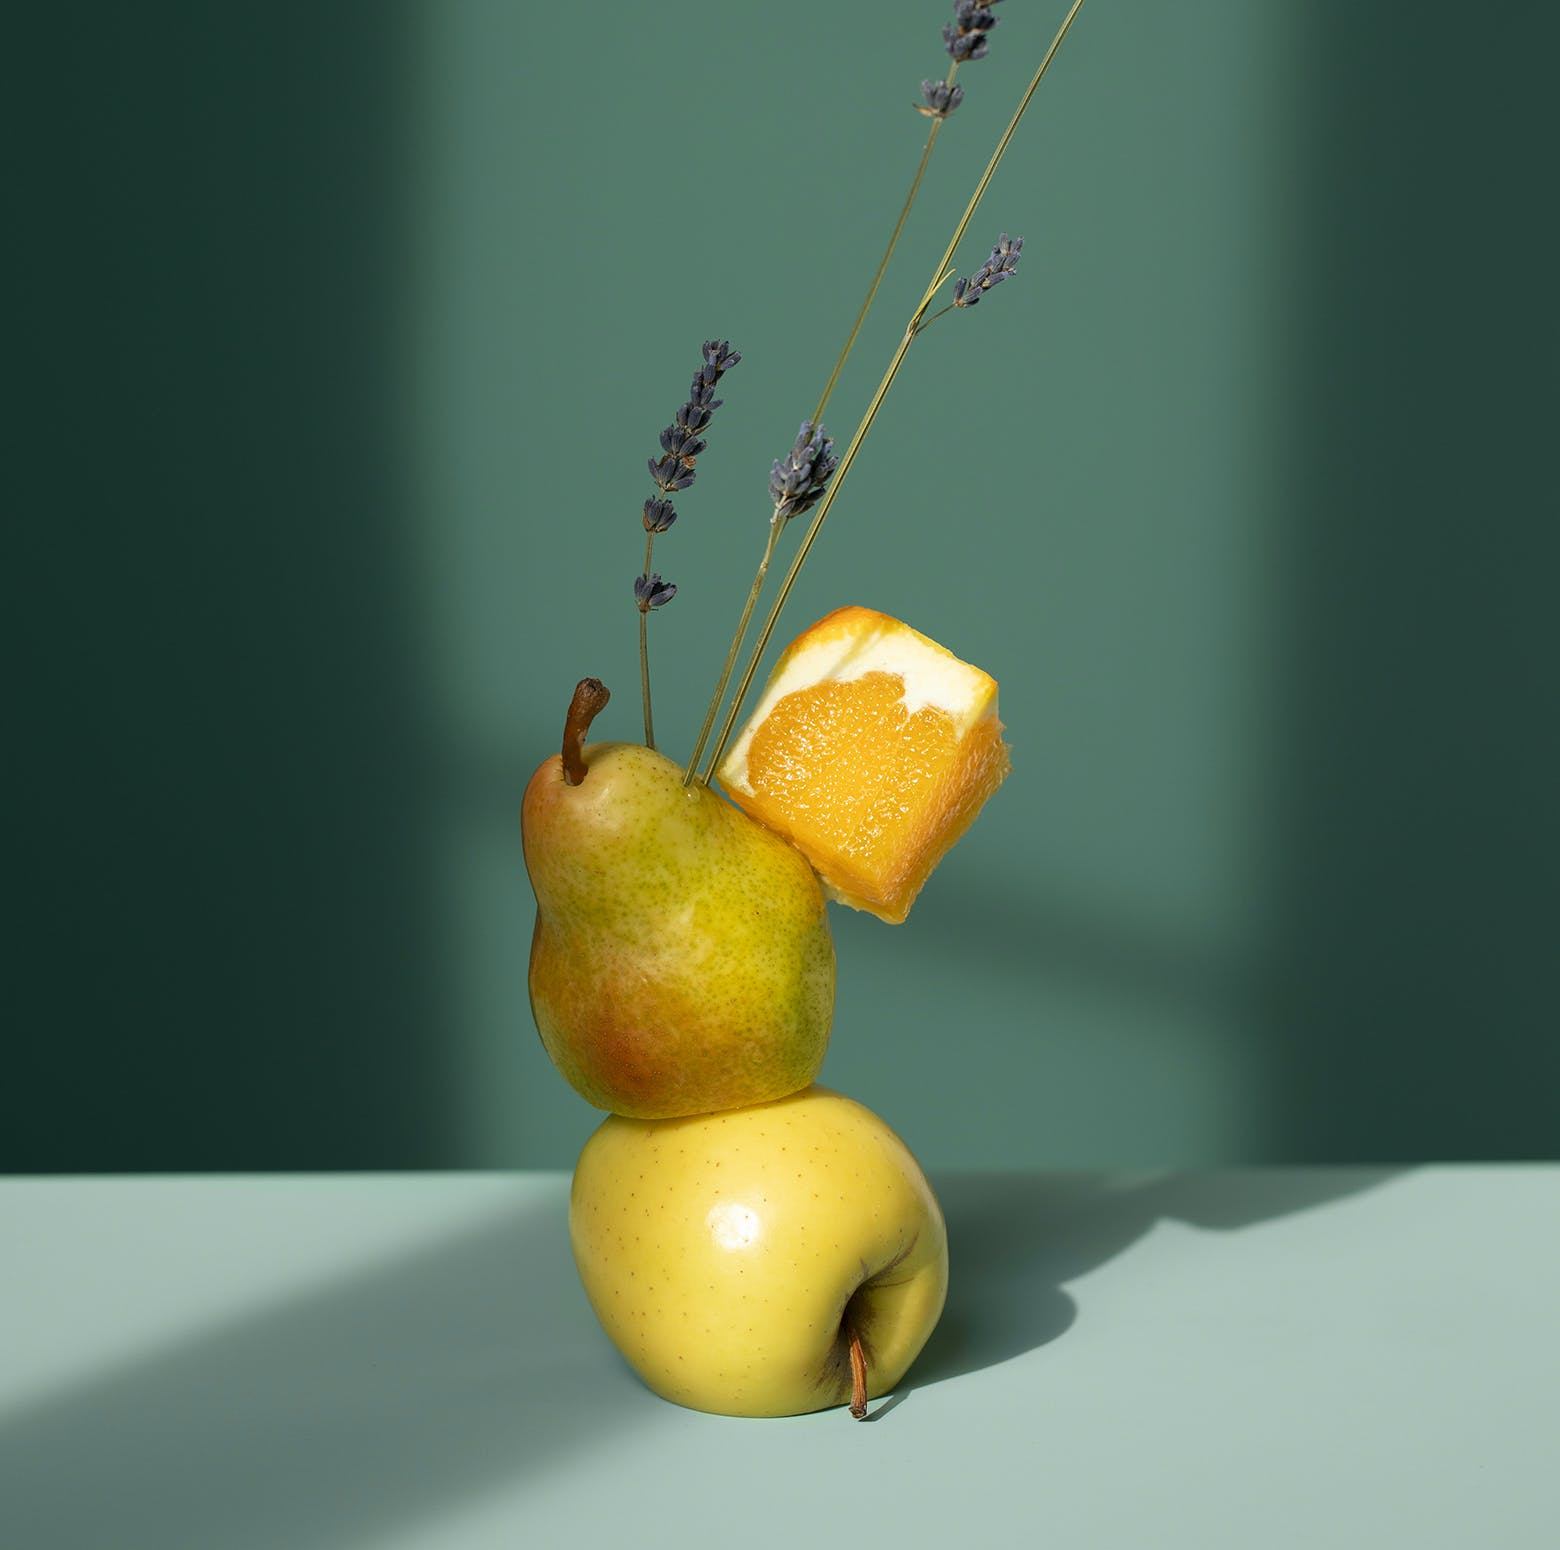 Pears stacked with a orange slice and lavender extending upwards